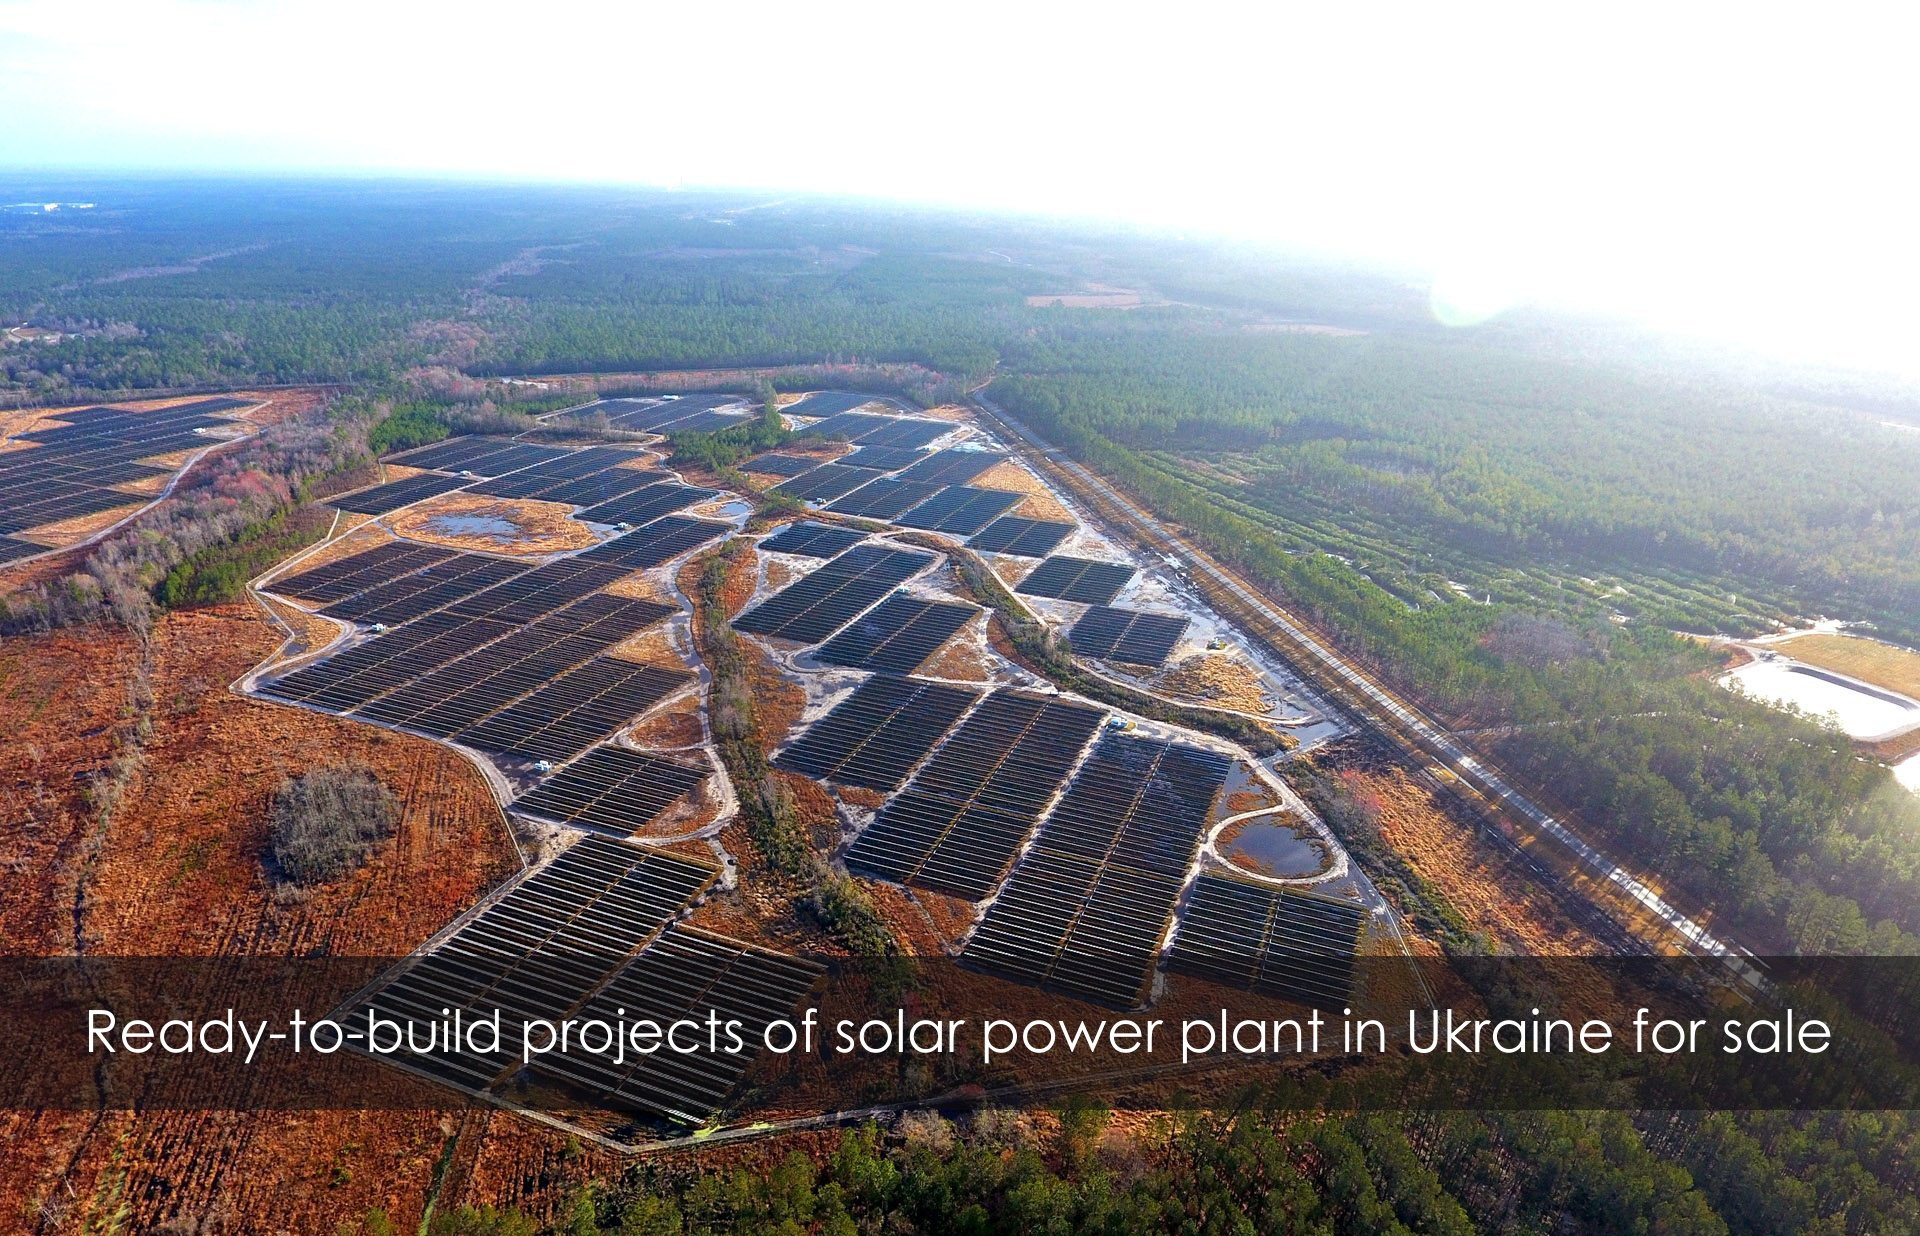 Ready to build land plots for solar plant in Ukraine